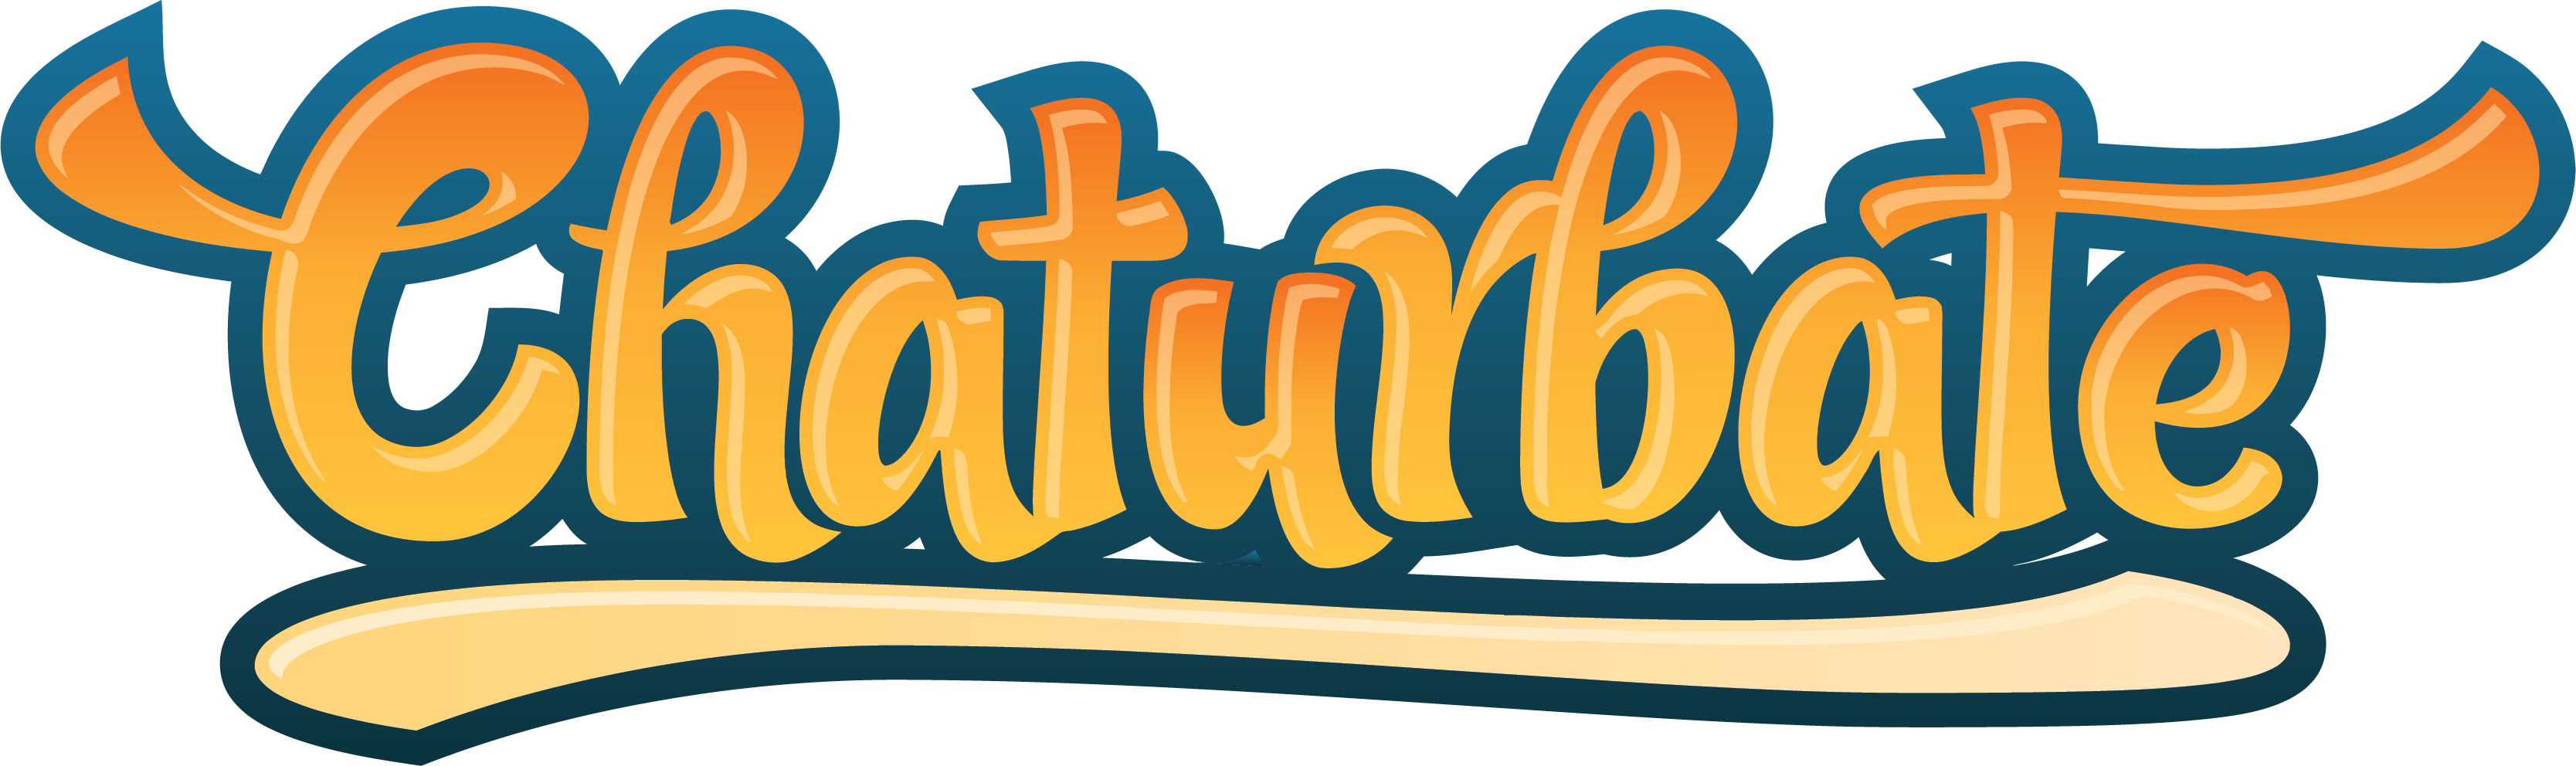 Chaturbate in Review